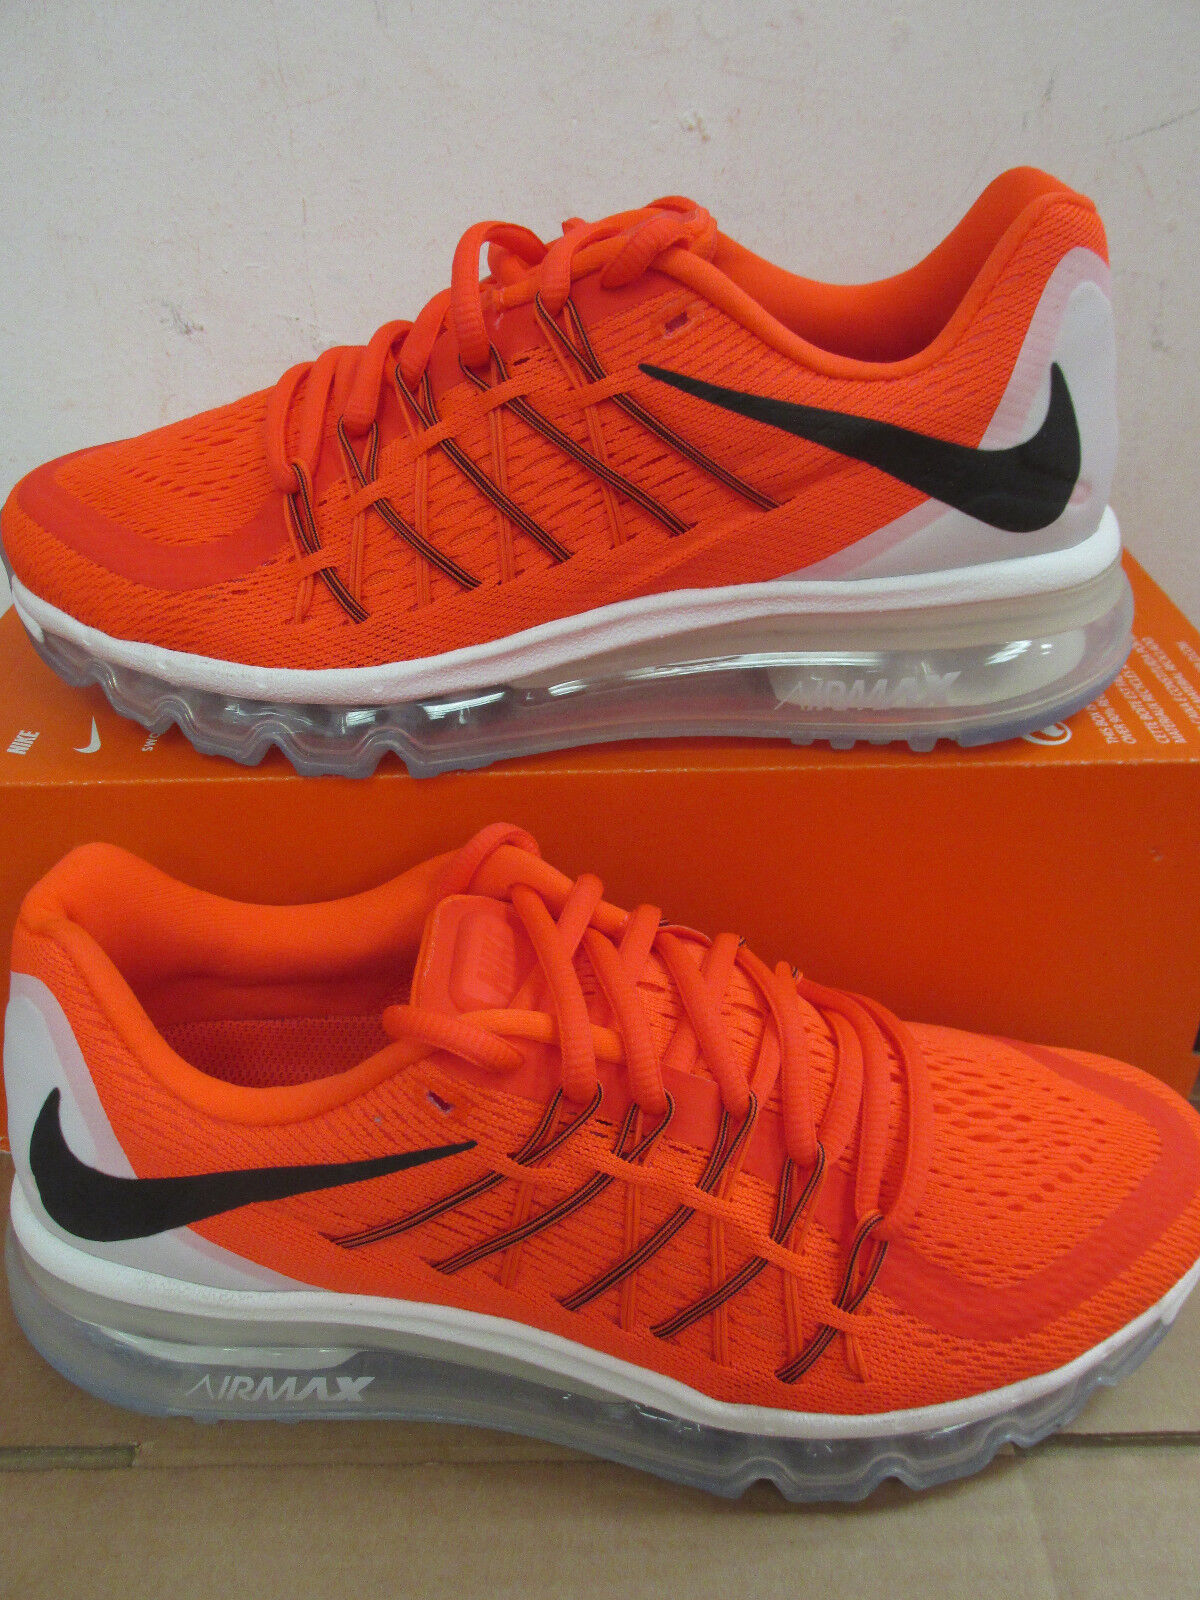 factory price 425ab 195f1 Nike air max 2015 mens running trainers trainers trainers 698902 600  sneakers shoes CLEARANCE 232abc